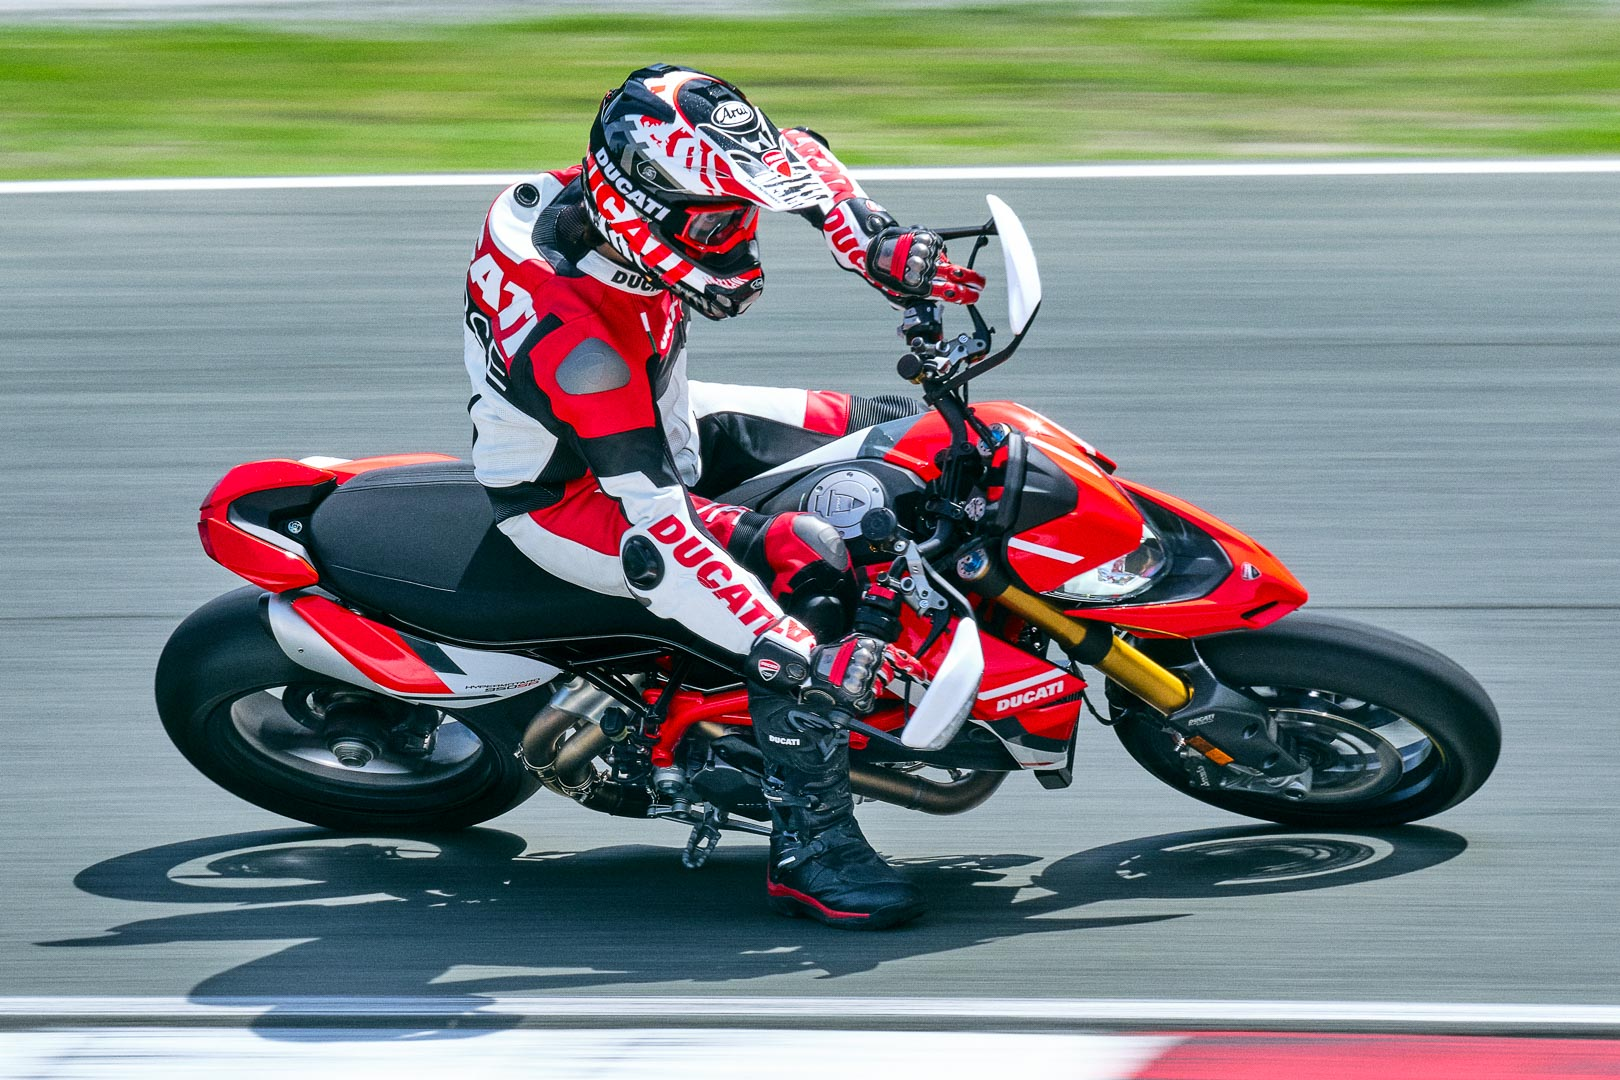 2022 Ducati Hypermotard 950 Lineup First Look: 3 Models Available